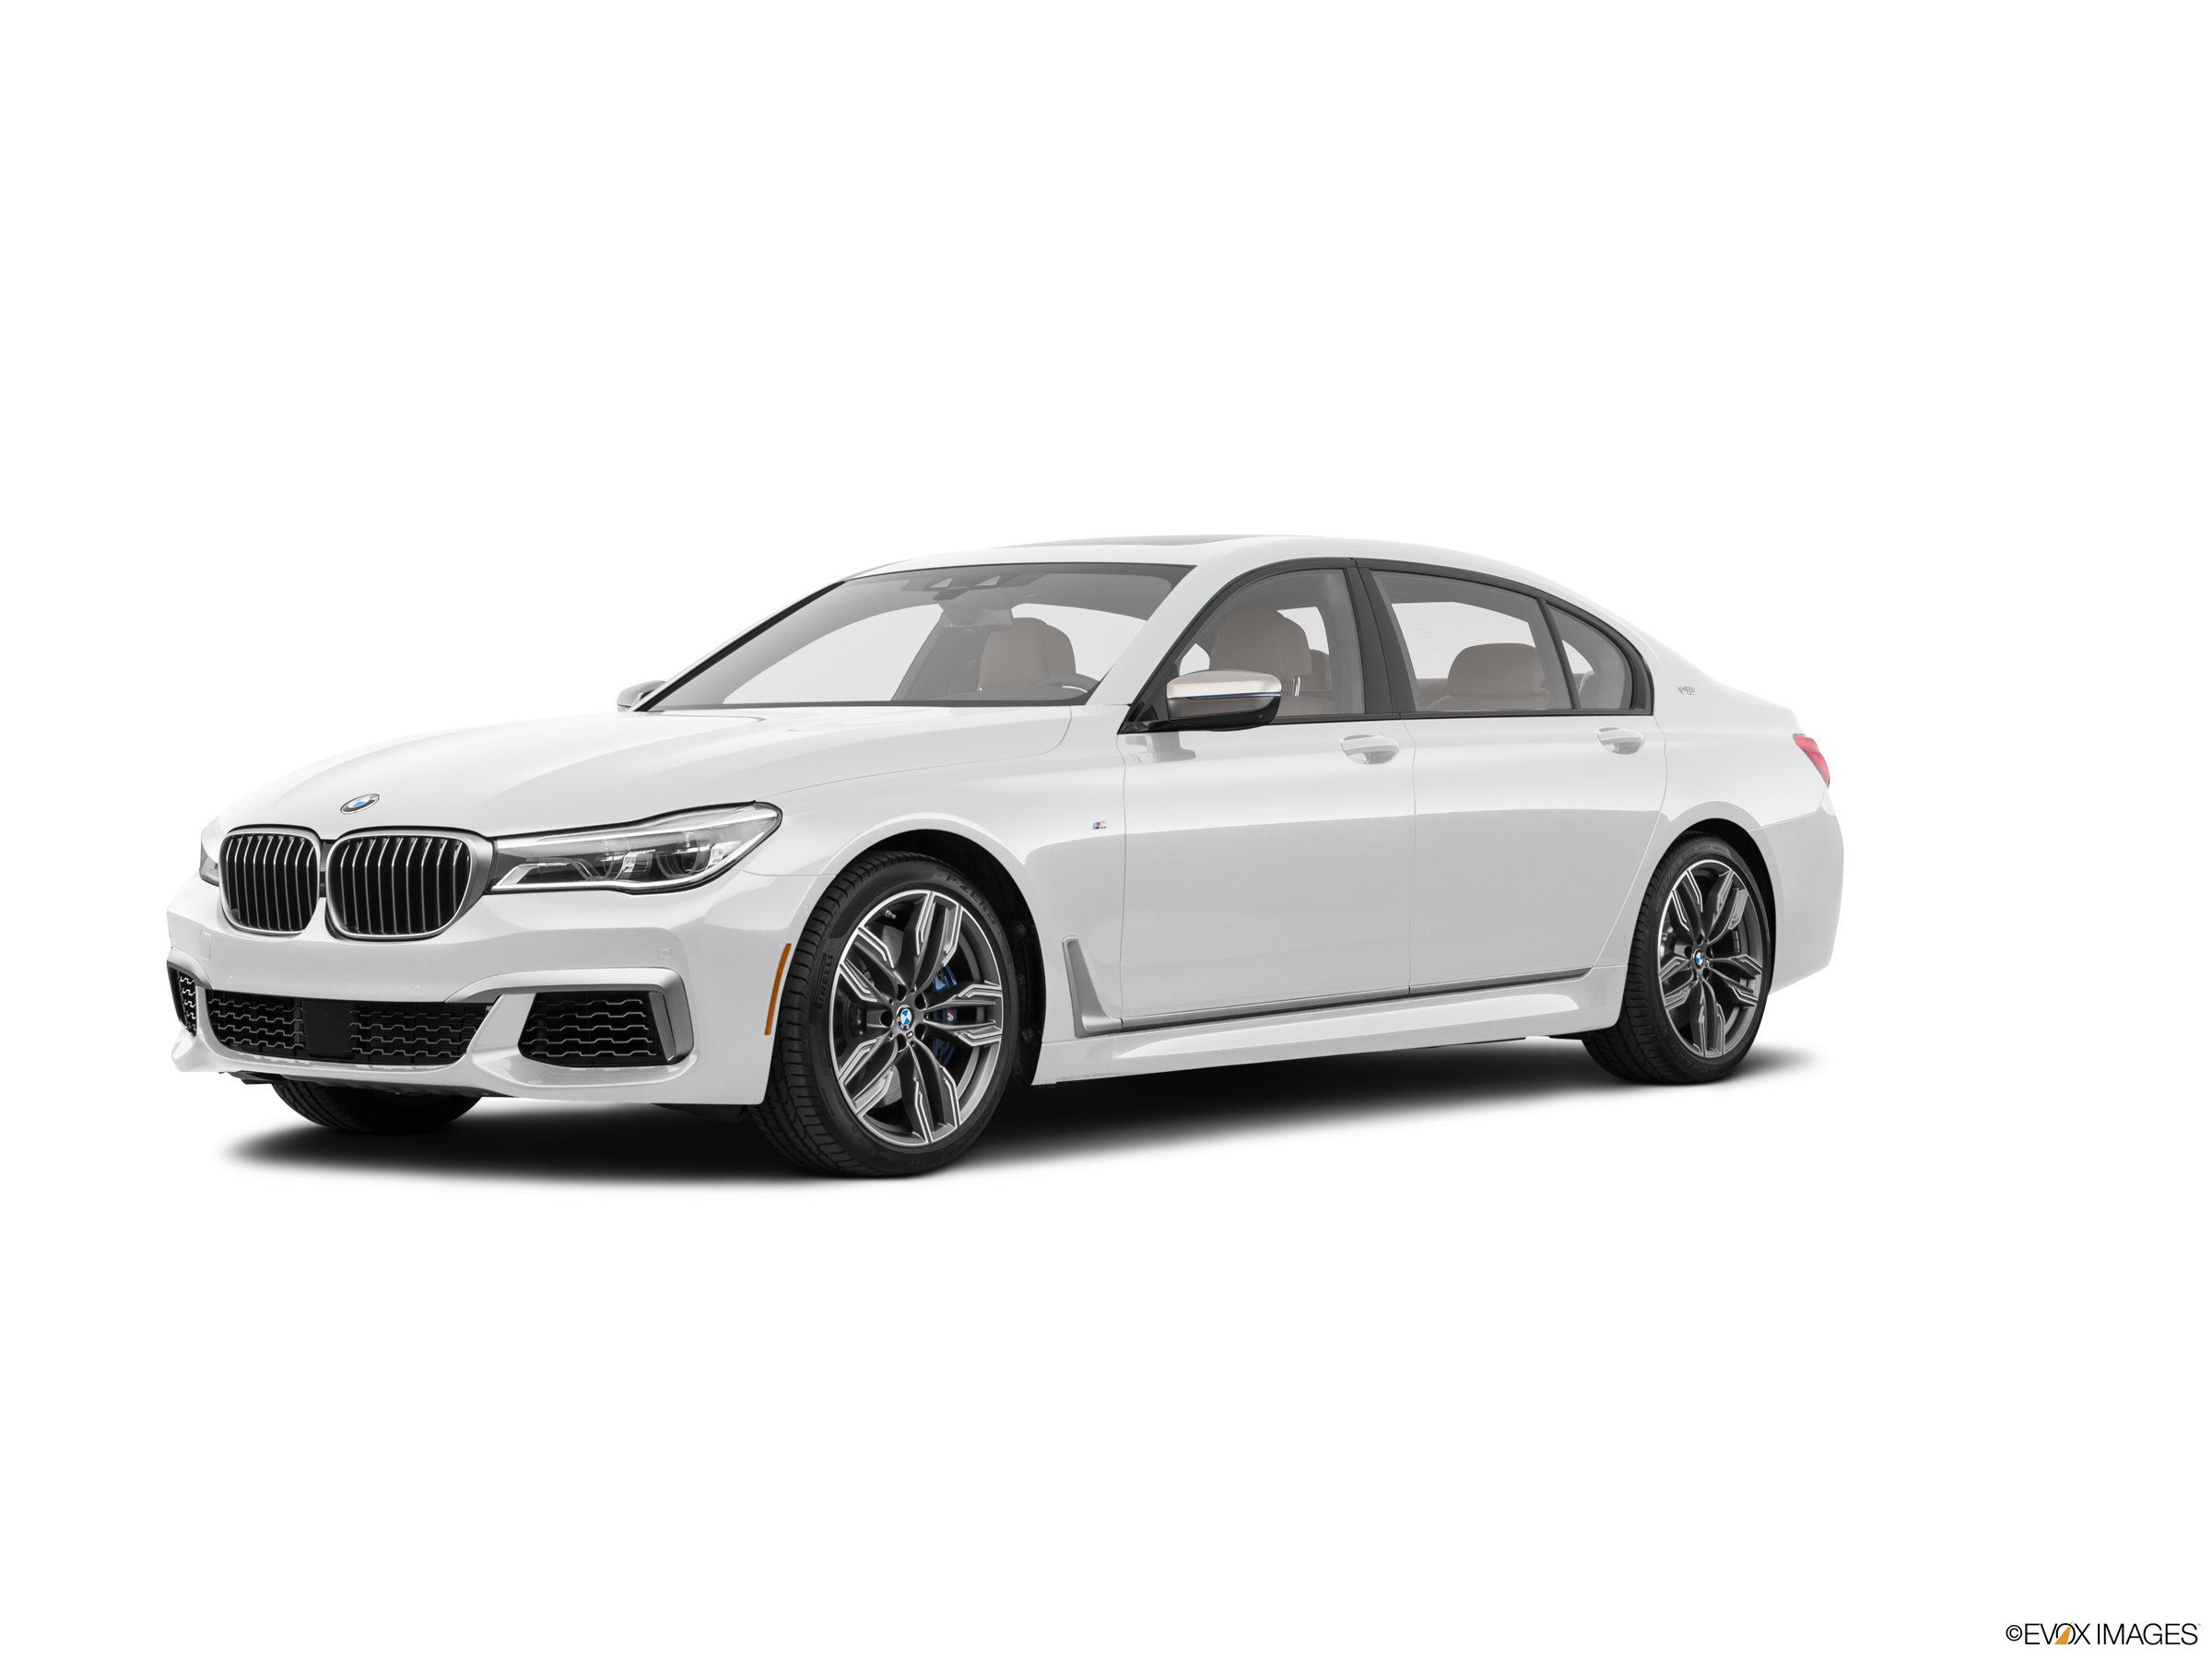 Highest Horsepower Luxury Vehicles of 2018 - 2018 BMW 7 Series